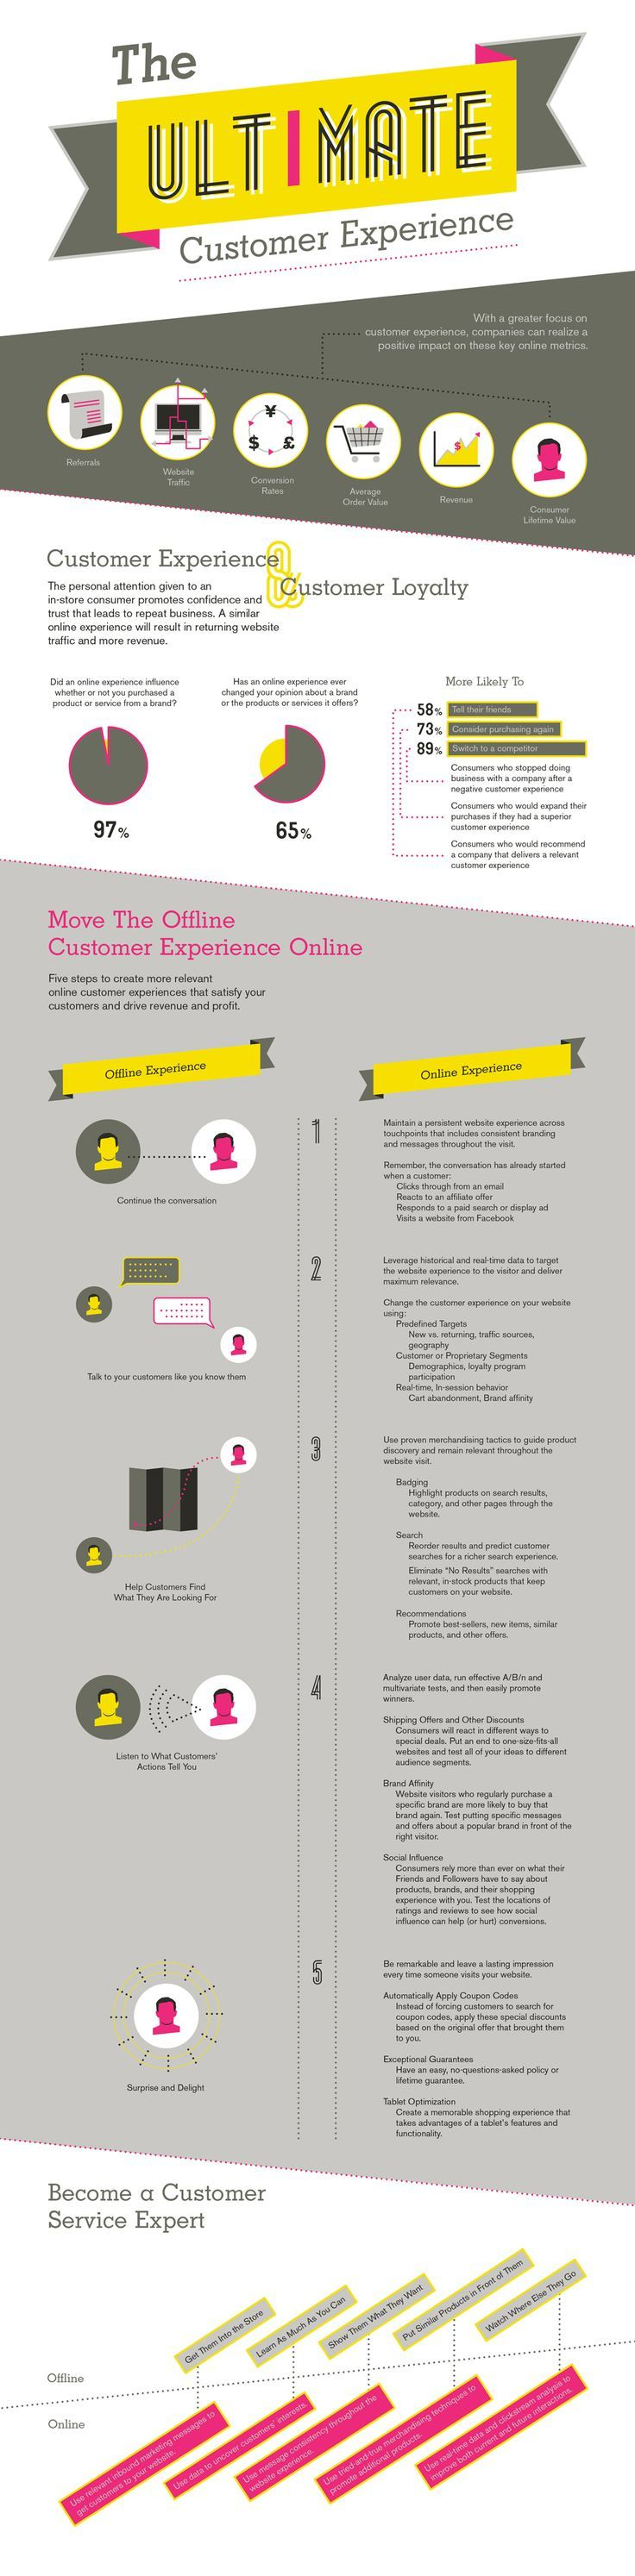 199 best customer experience cx images on pinterest customer infographic the ultimate customer experience make every connection with your customer a great experience and work to satisfy customer needs by angelina fandeluxe Gallery